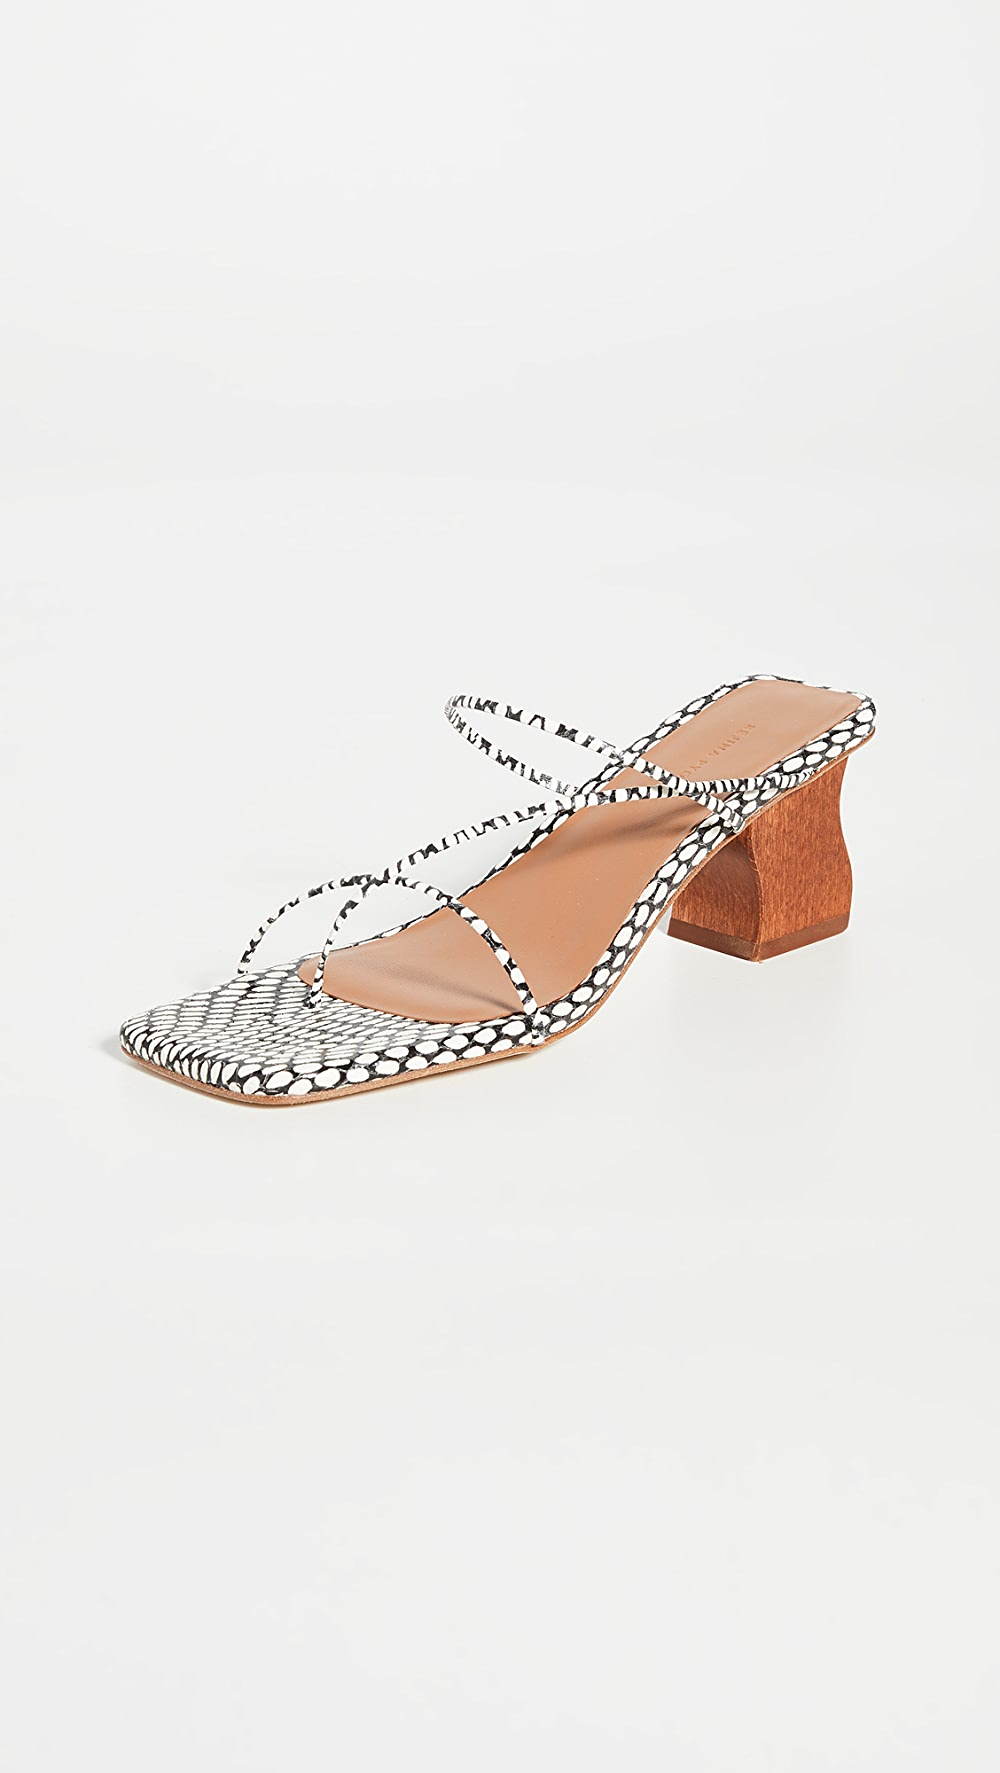 Humorous Rejina Pyo - 60mm Wave Harley Sandals Famous For High Quality Raw Materials, Full Range Of Specifications And Sizes, And Great Variety Of Designs And Colors